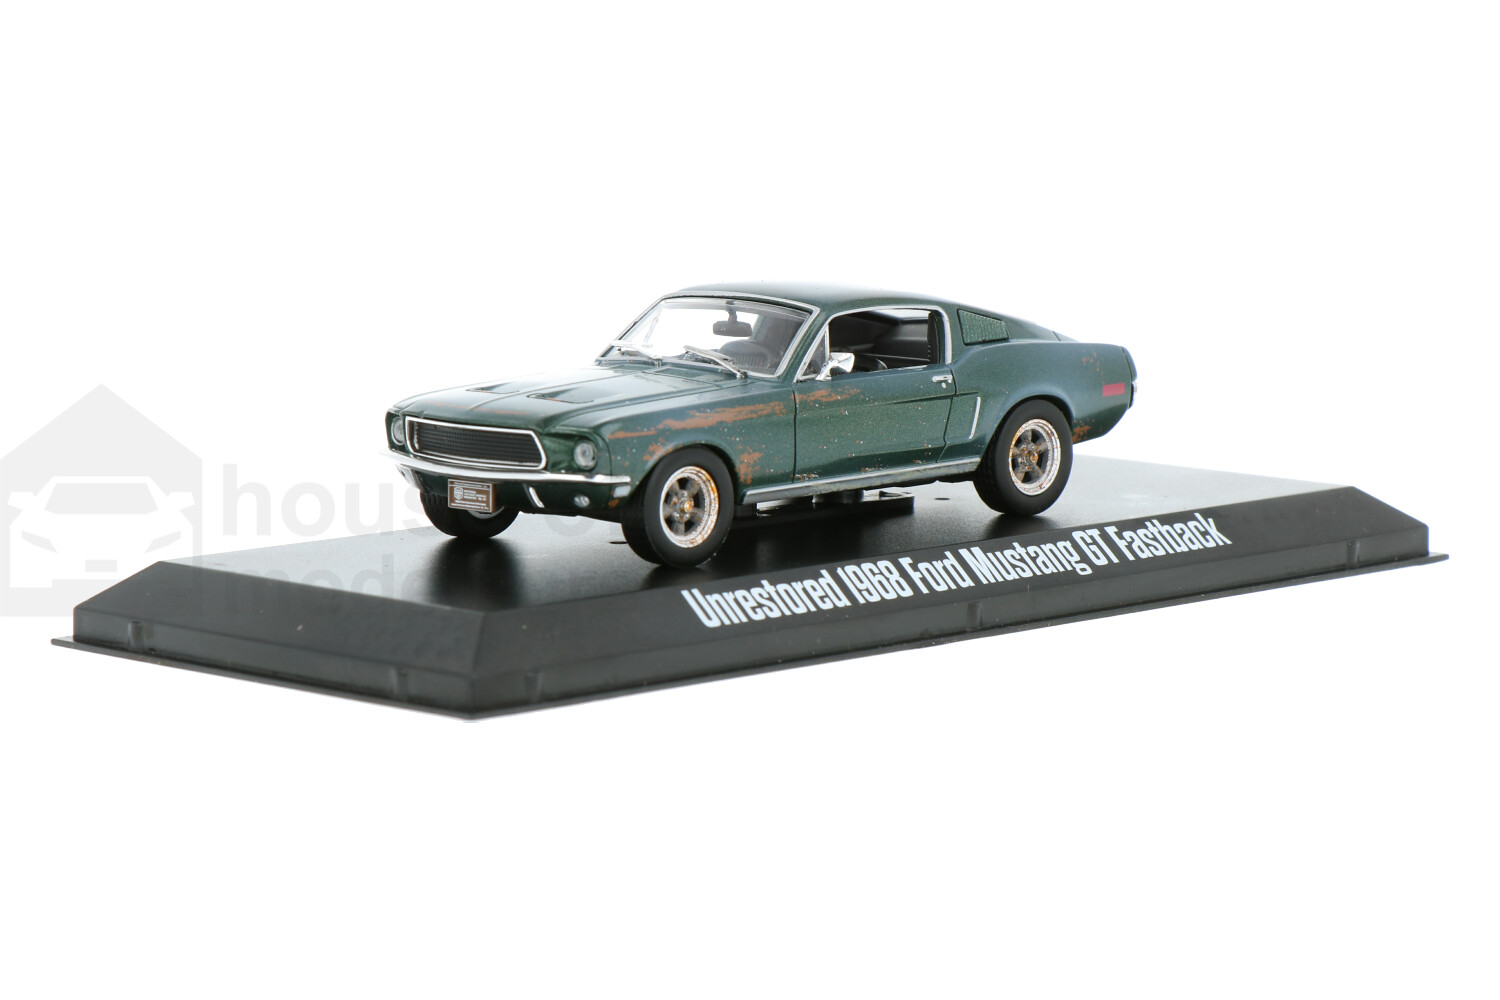 Ford Mustang GT Fastback - Modelauto schaal 1:43